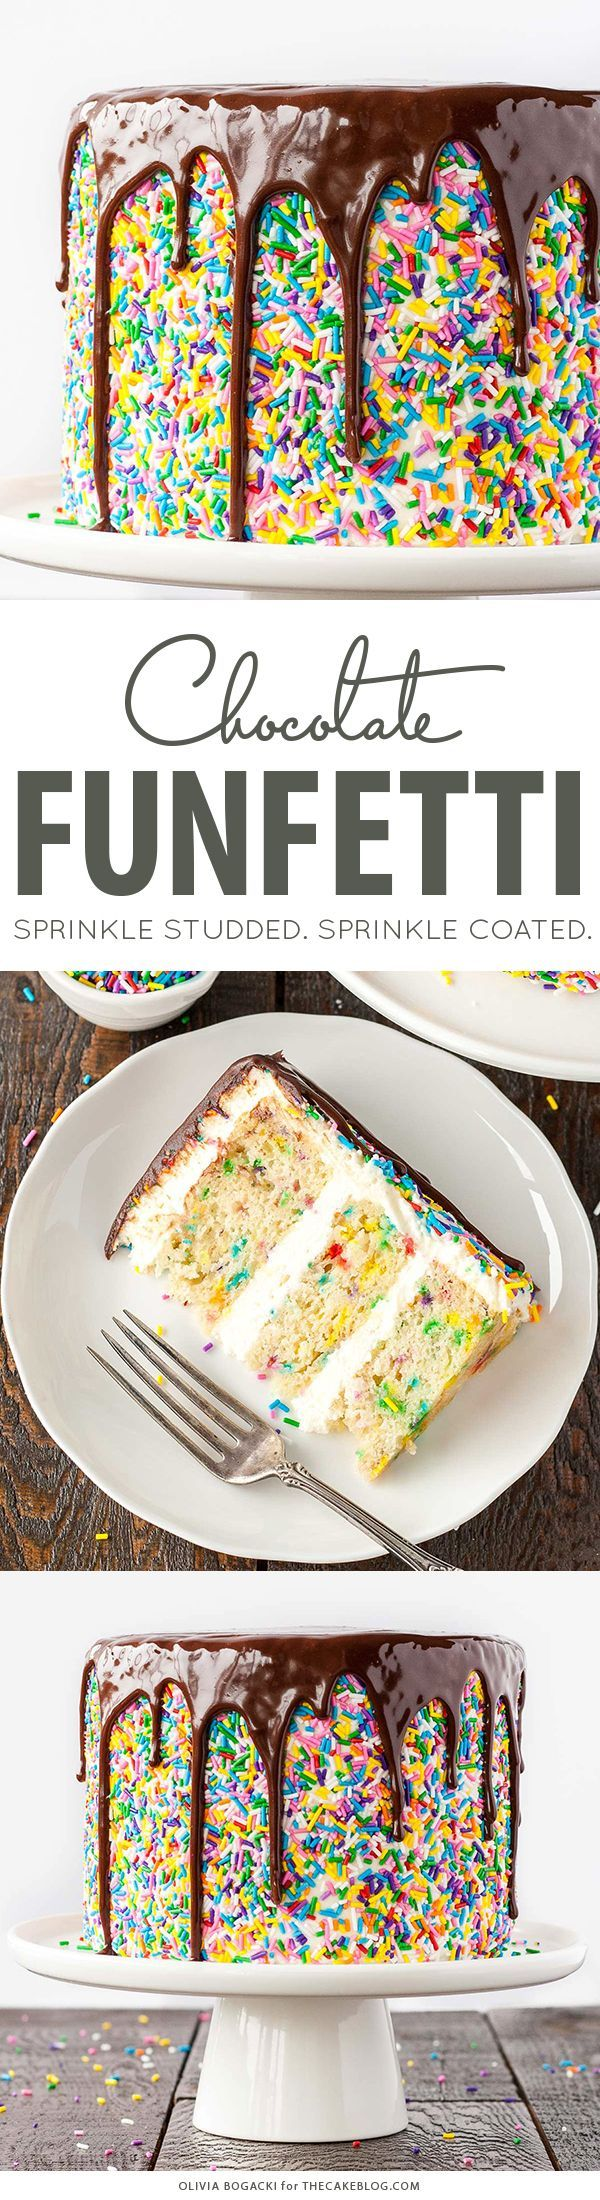 Funfetti Sprinkle Cake with Drippy Chocolate Ganache   by Olivia Bogacki for TheCakeBlog.com